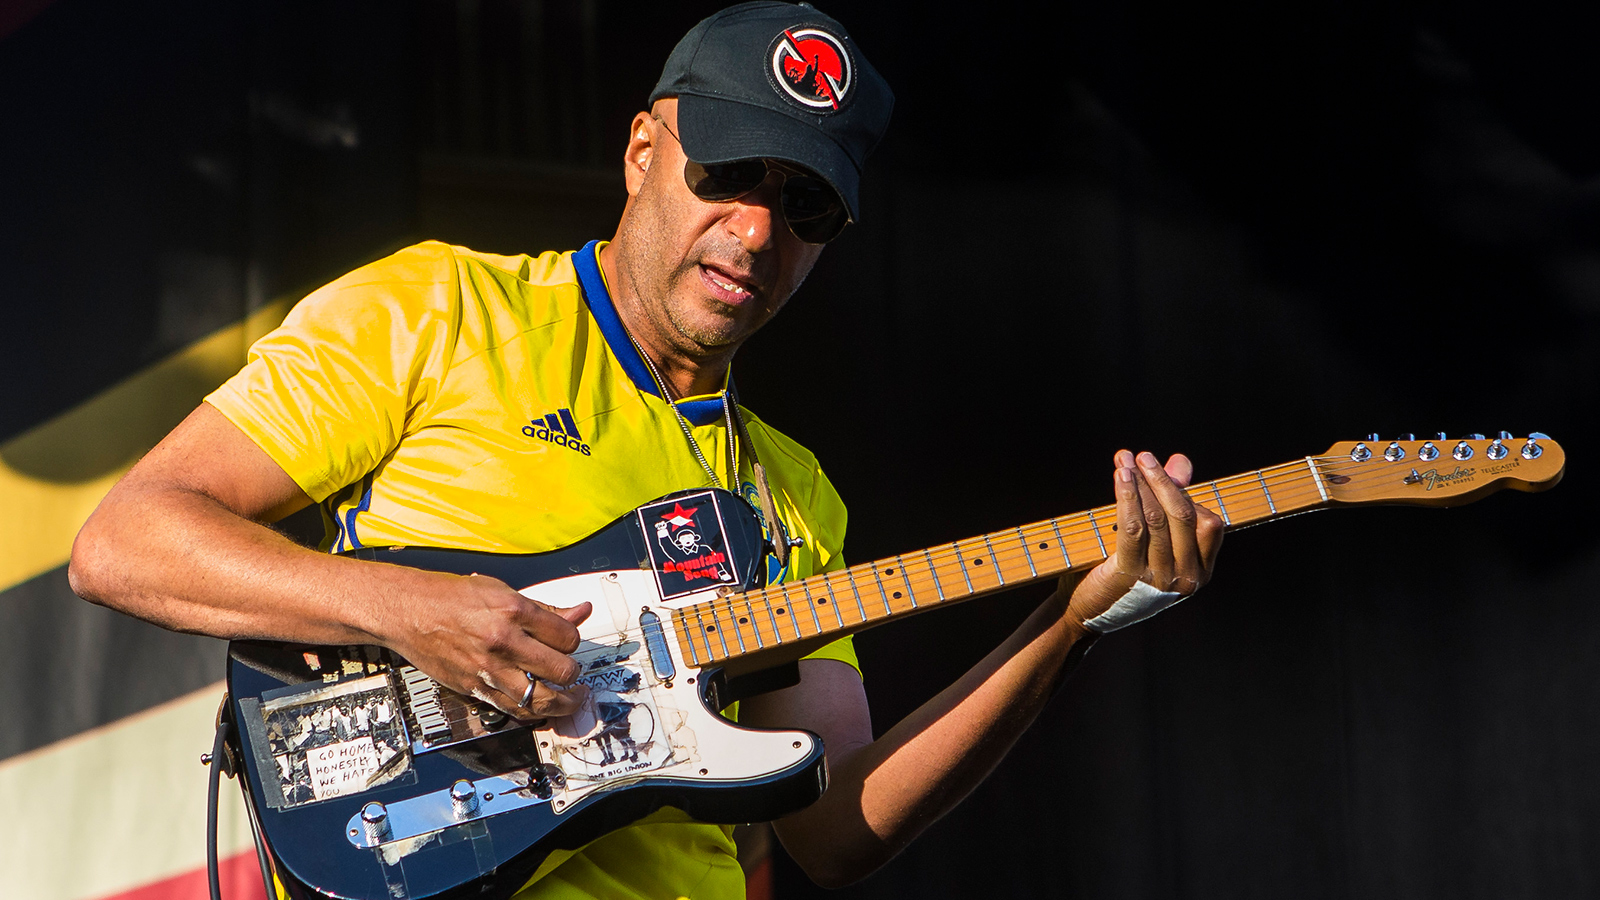 Tom Morello Responds to Backlash Following Phone-Throwing Incident